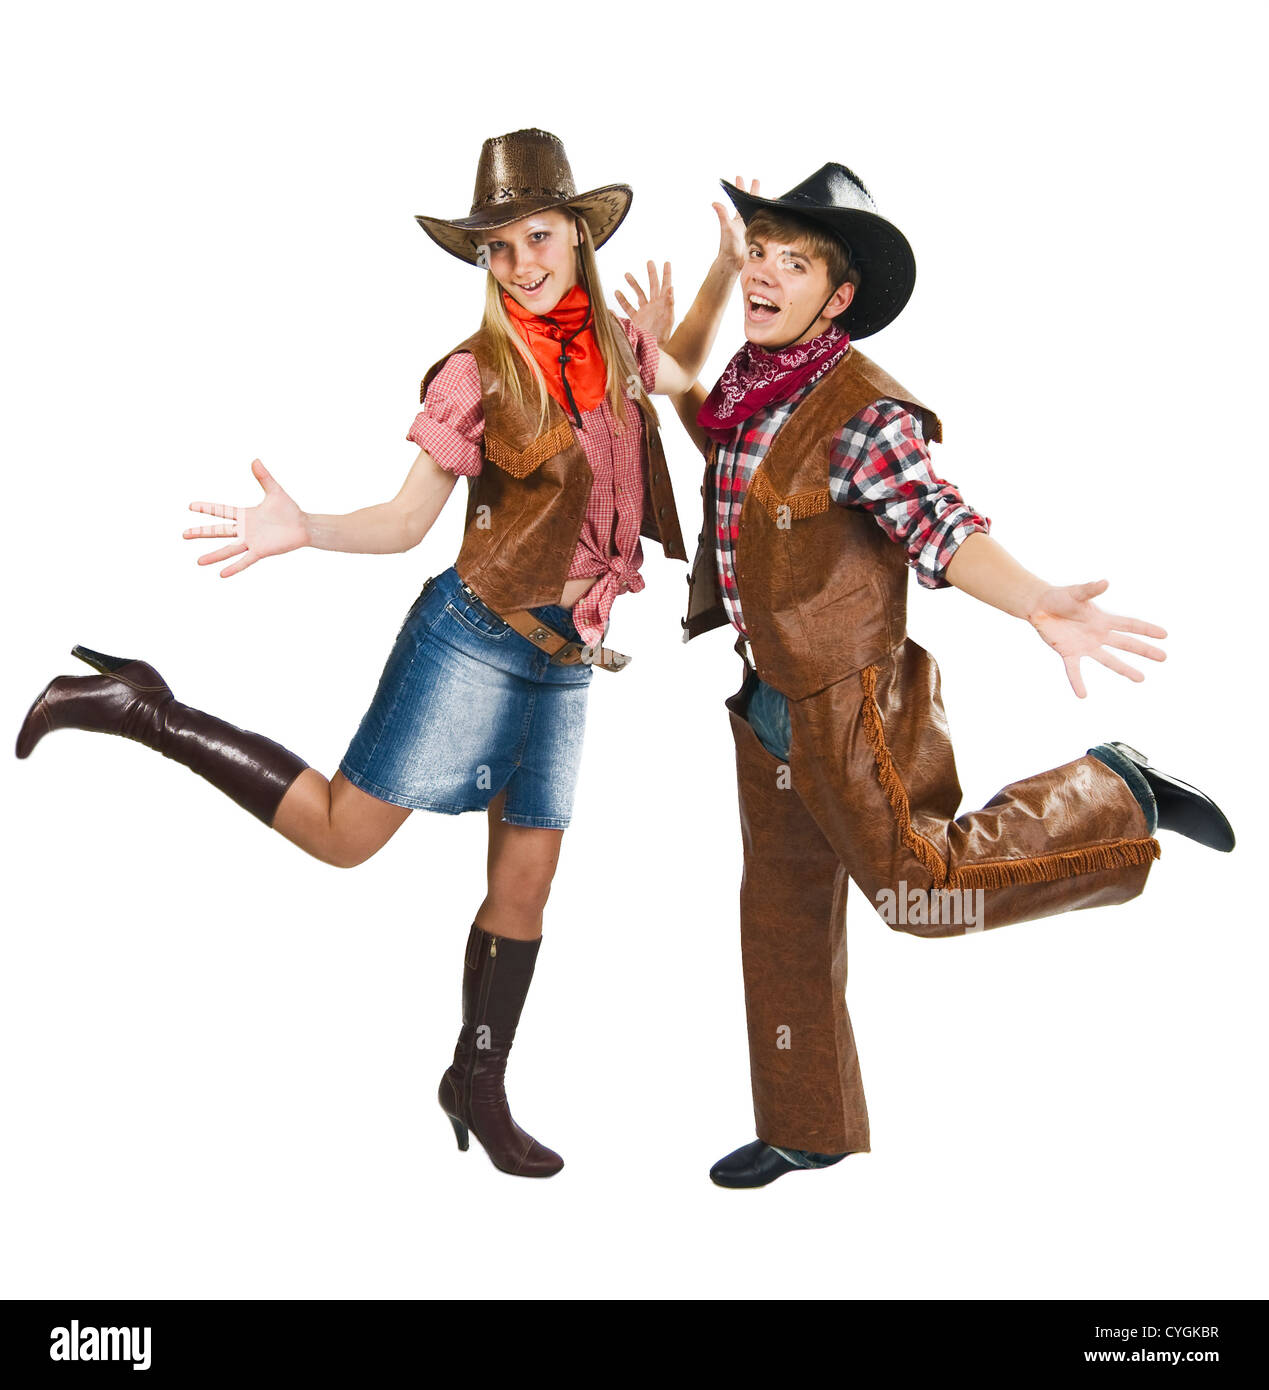 Cowboy with cowgirl happy excited couple dancing on white - Stock Image